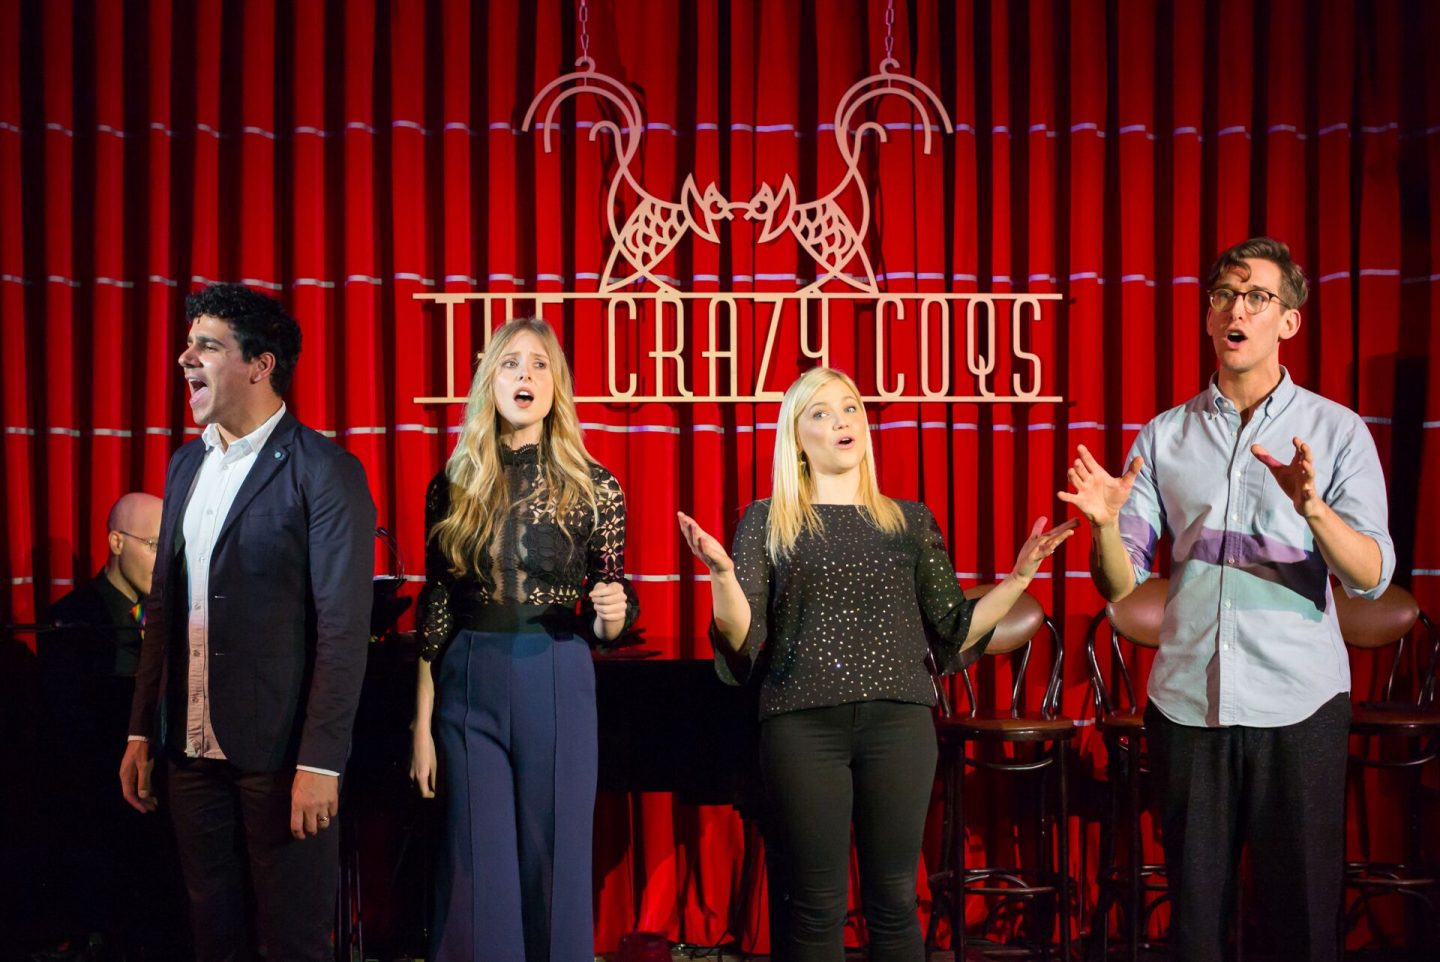 I Wish My Life Were Like A Musical at The Crazy Coqs